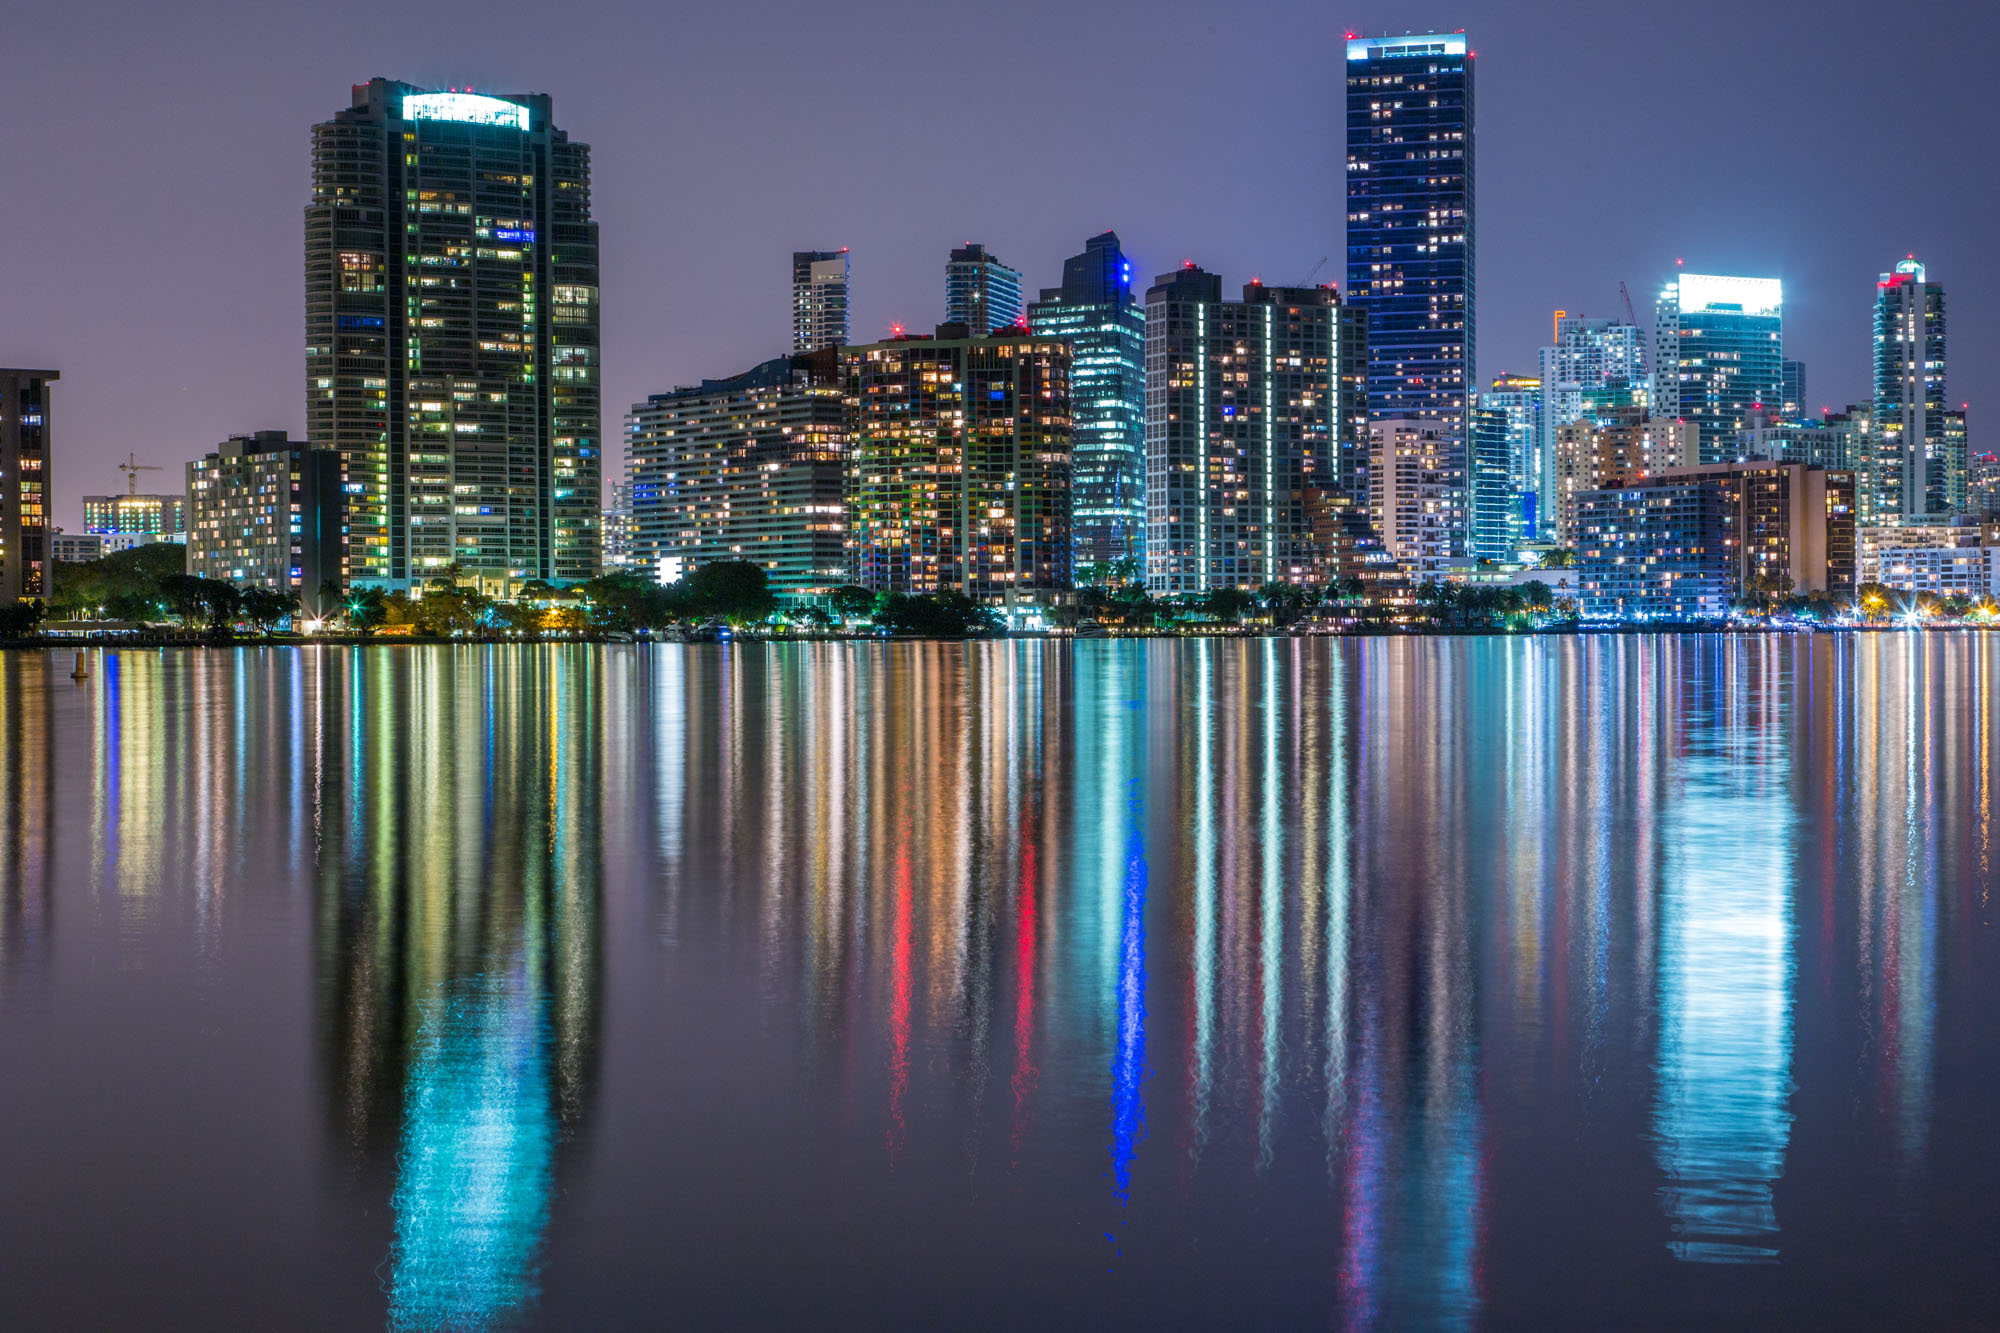 long exposure night photography of downtown Miami skyline reflected at night illuminated by Biscayne Bay in Florida USA